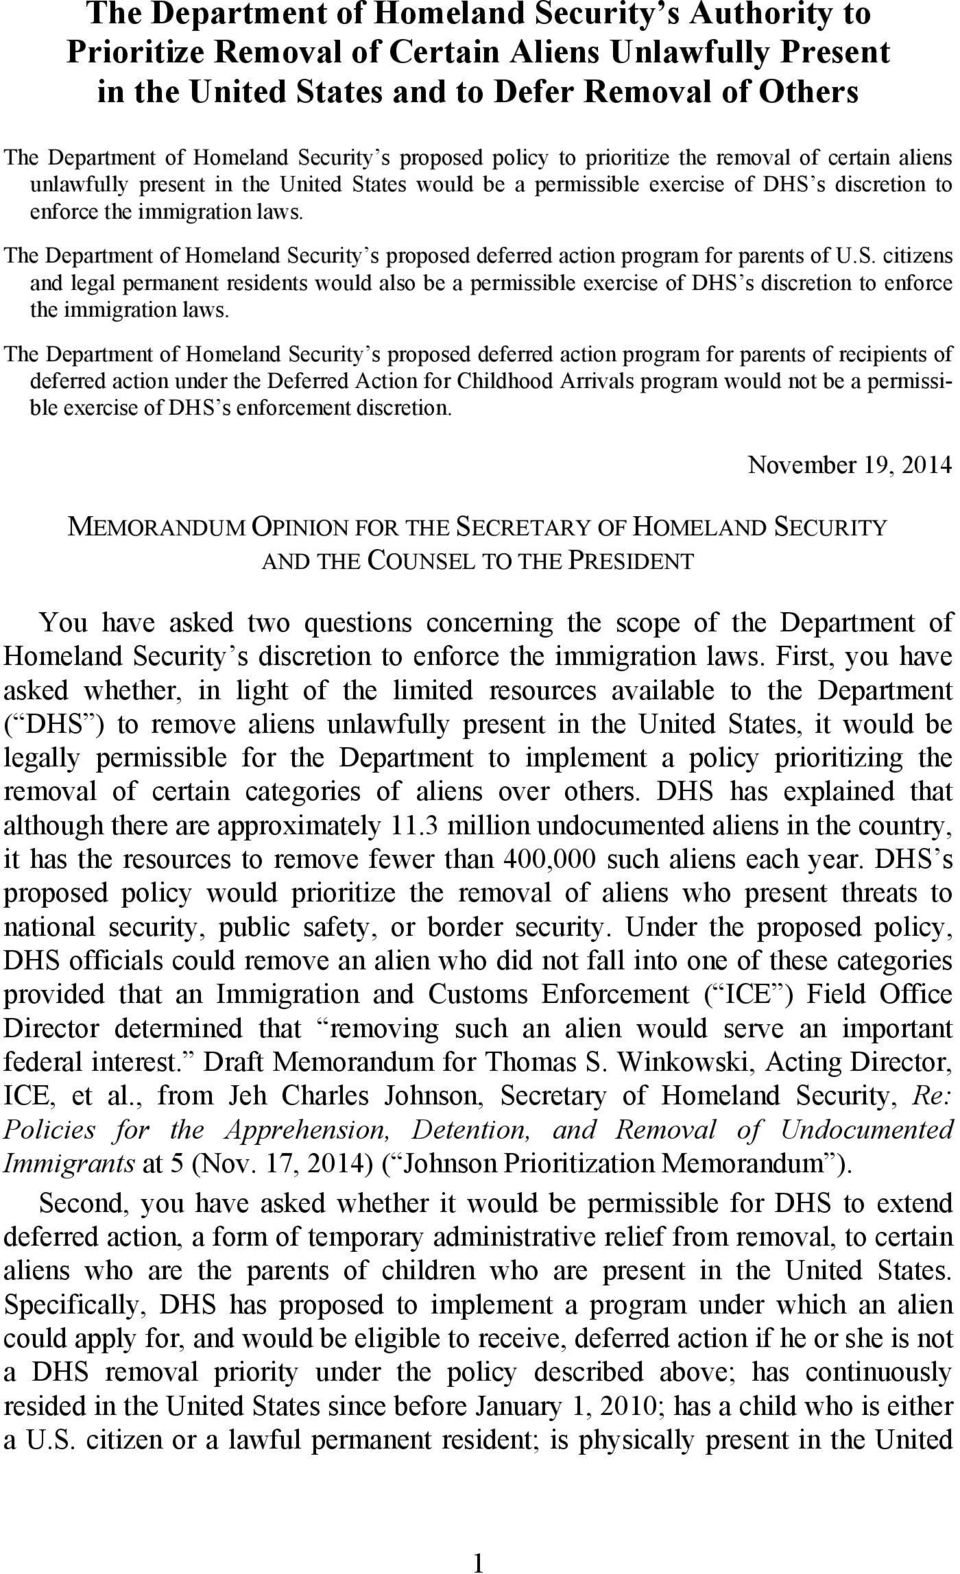 The Department of Homeland Security s proposed deferred action program for parents of U.S. citizens and legal permanent residents would also be a permissible exercise of DHS s discretion to enforce the immigration laws.